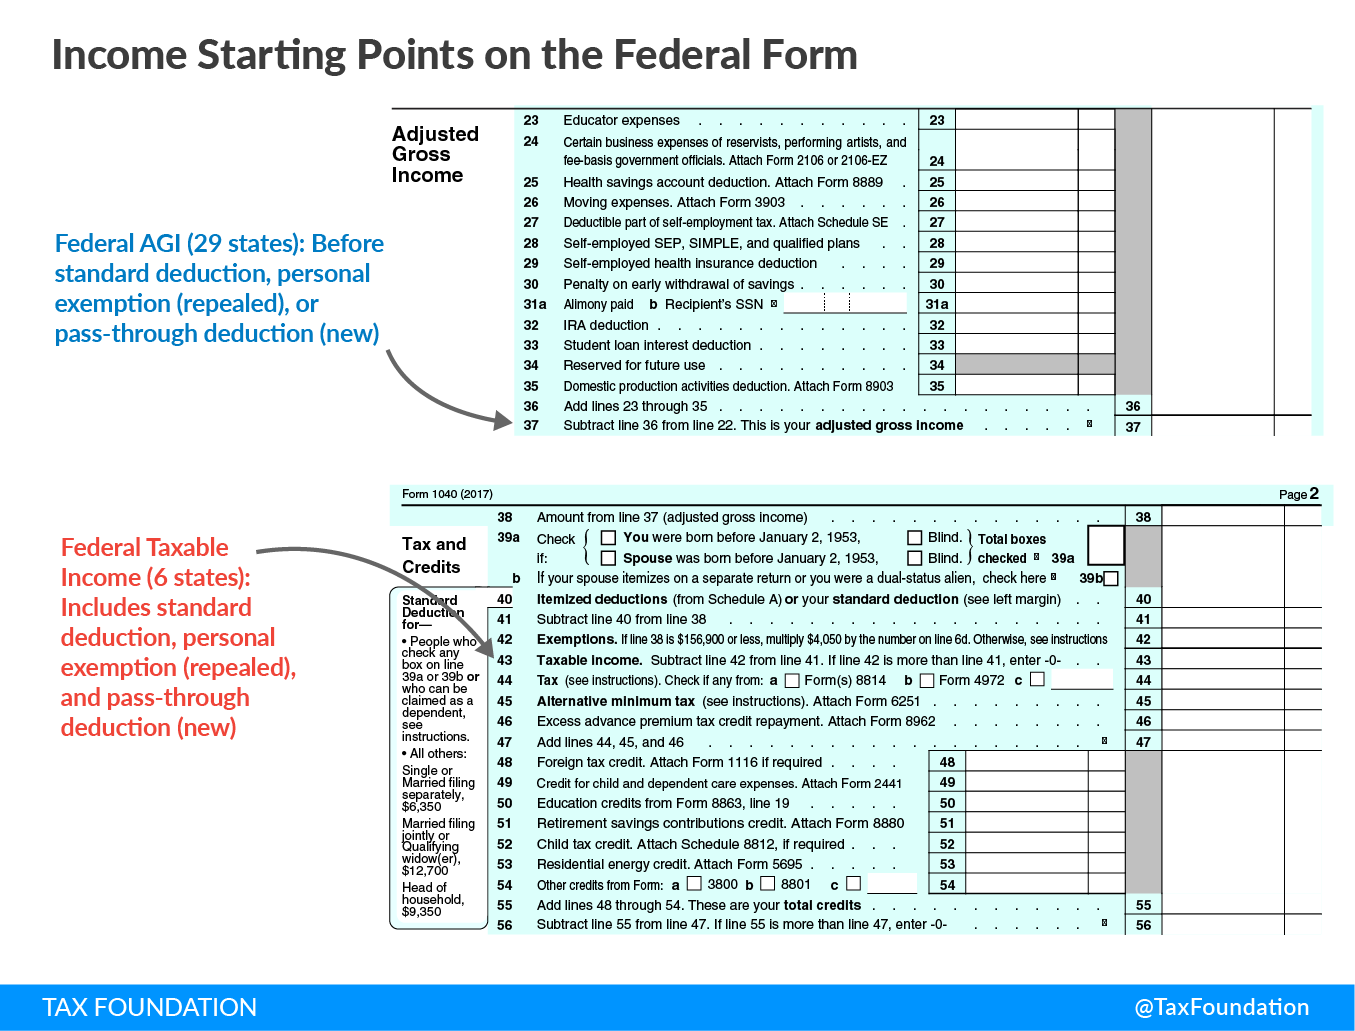 Income Starting Points on the Federal Form